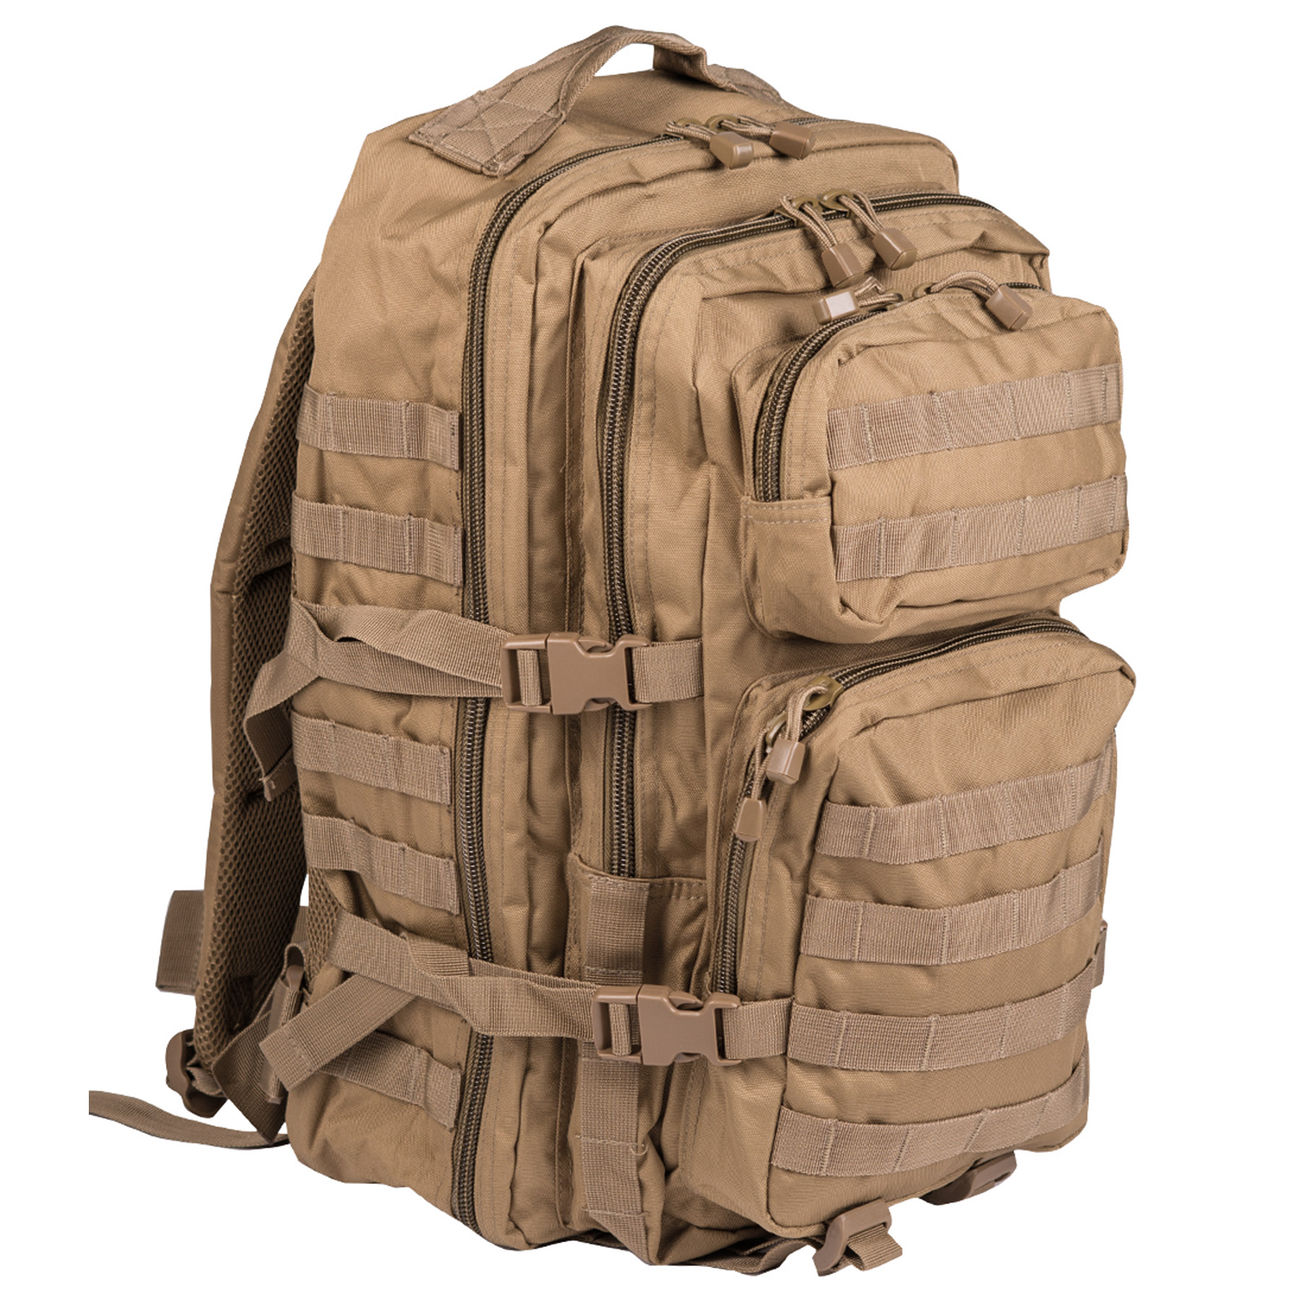 Mil-Tec Rucksack US Assault Pack LG 40 Liter coyote 0